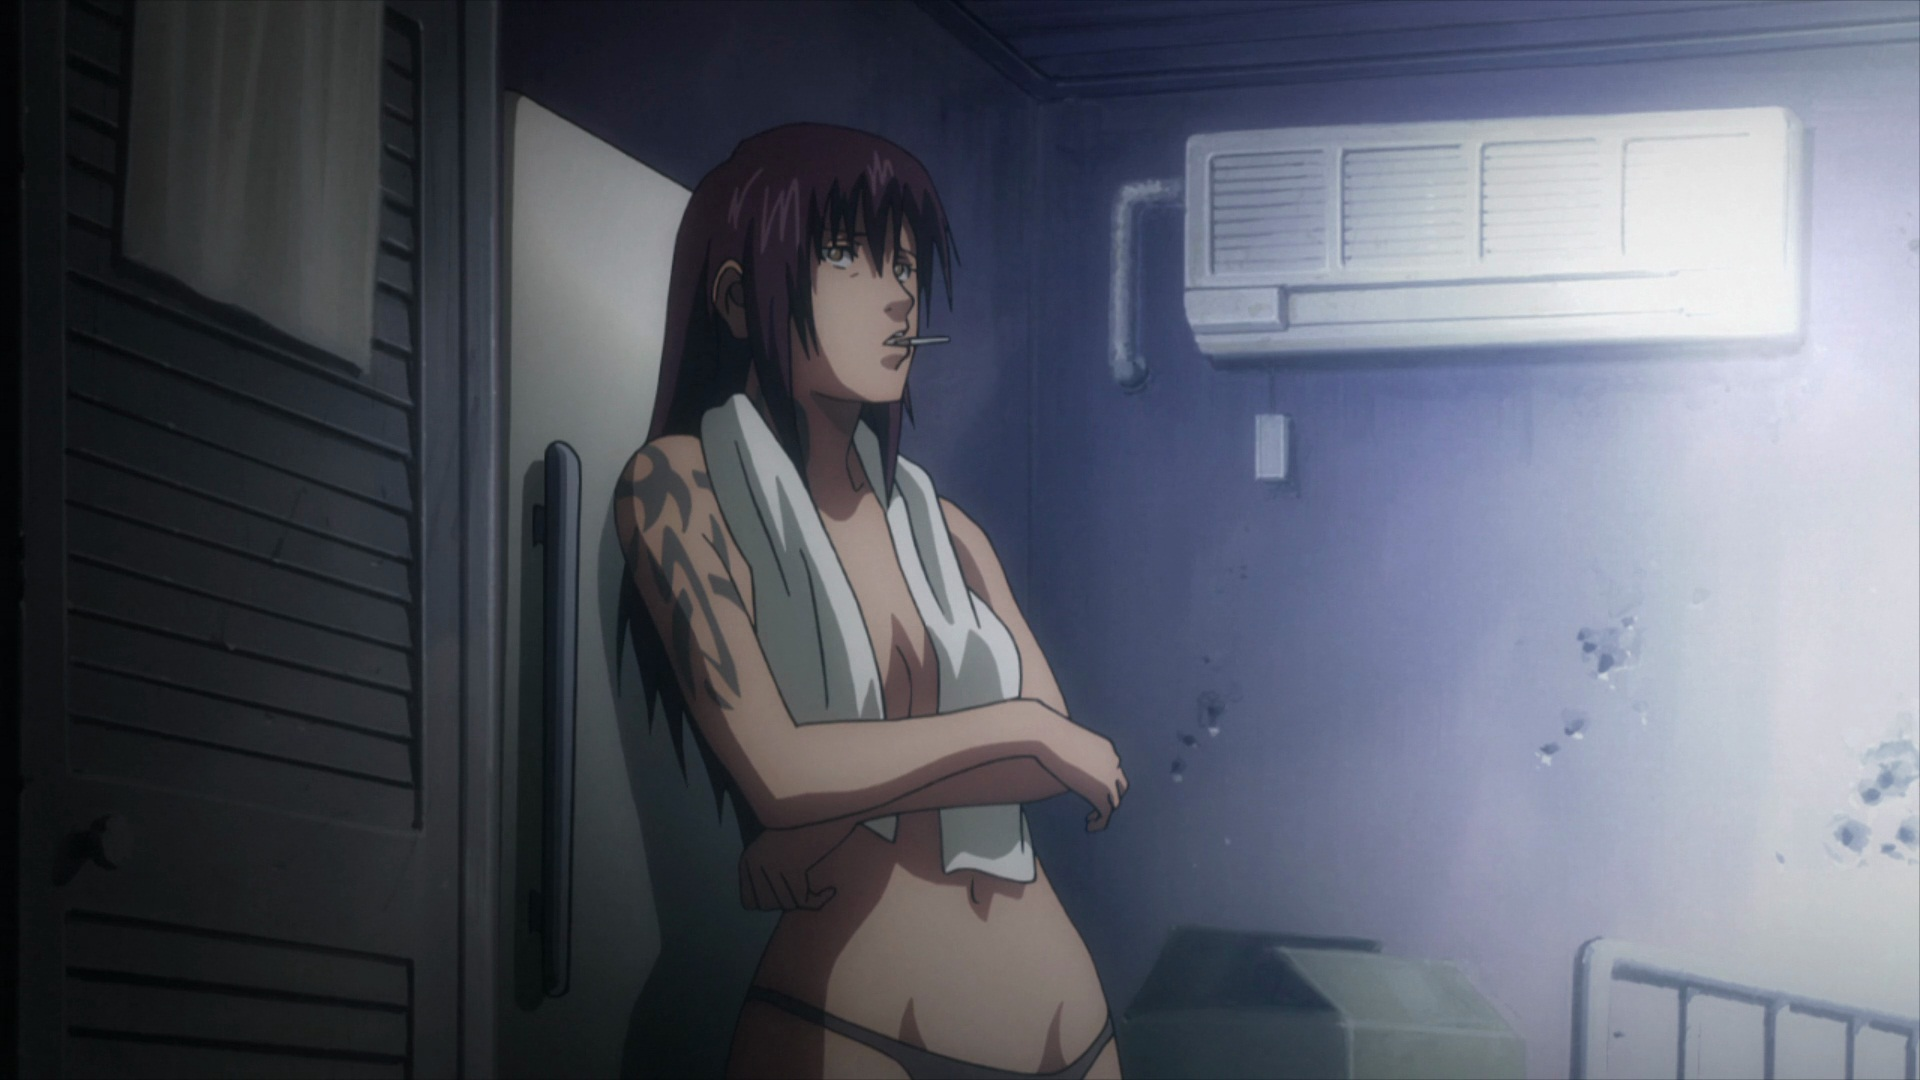 Revy Black Lagoon Hd Wallpaper 505501 Zerochan Anime Image